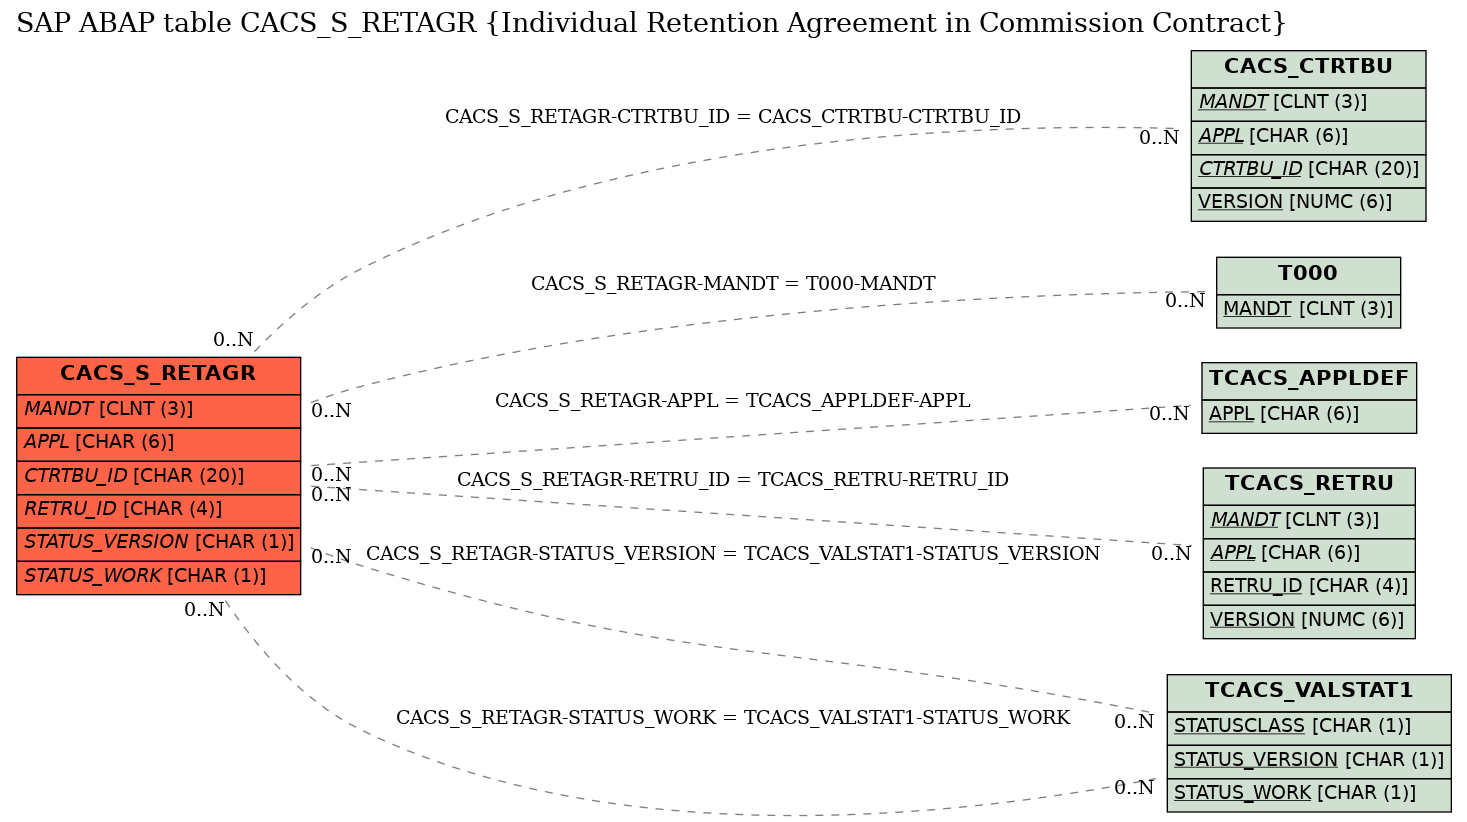 E-R Diagram for table CACS_S_RETAGR (Individual Retention Agreement in Commission Contract)